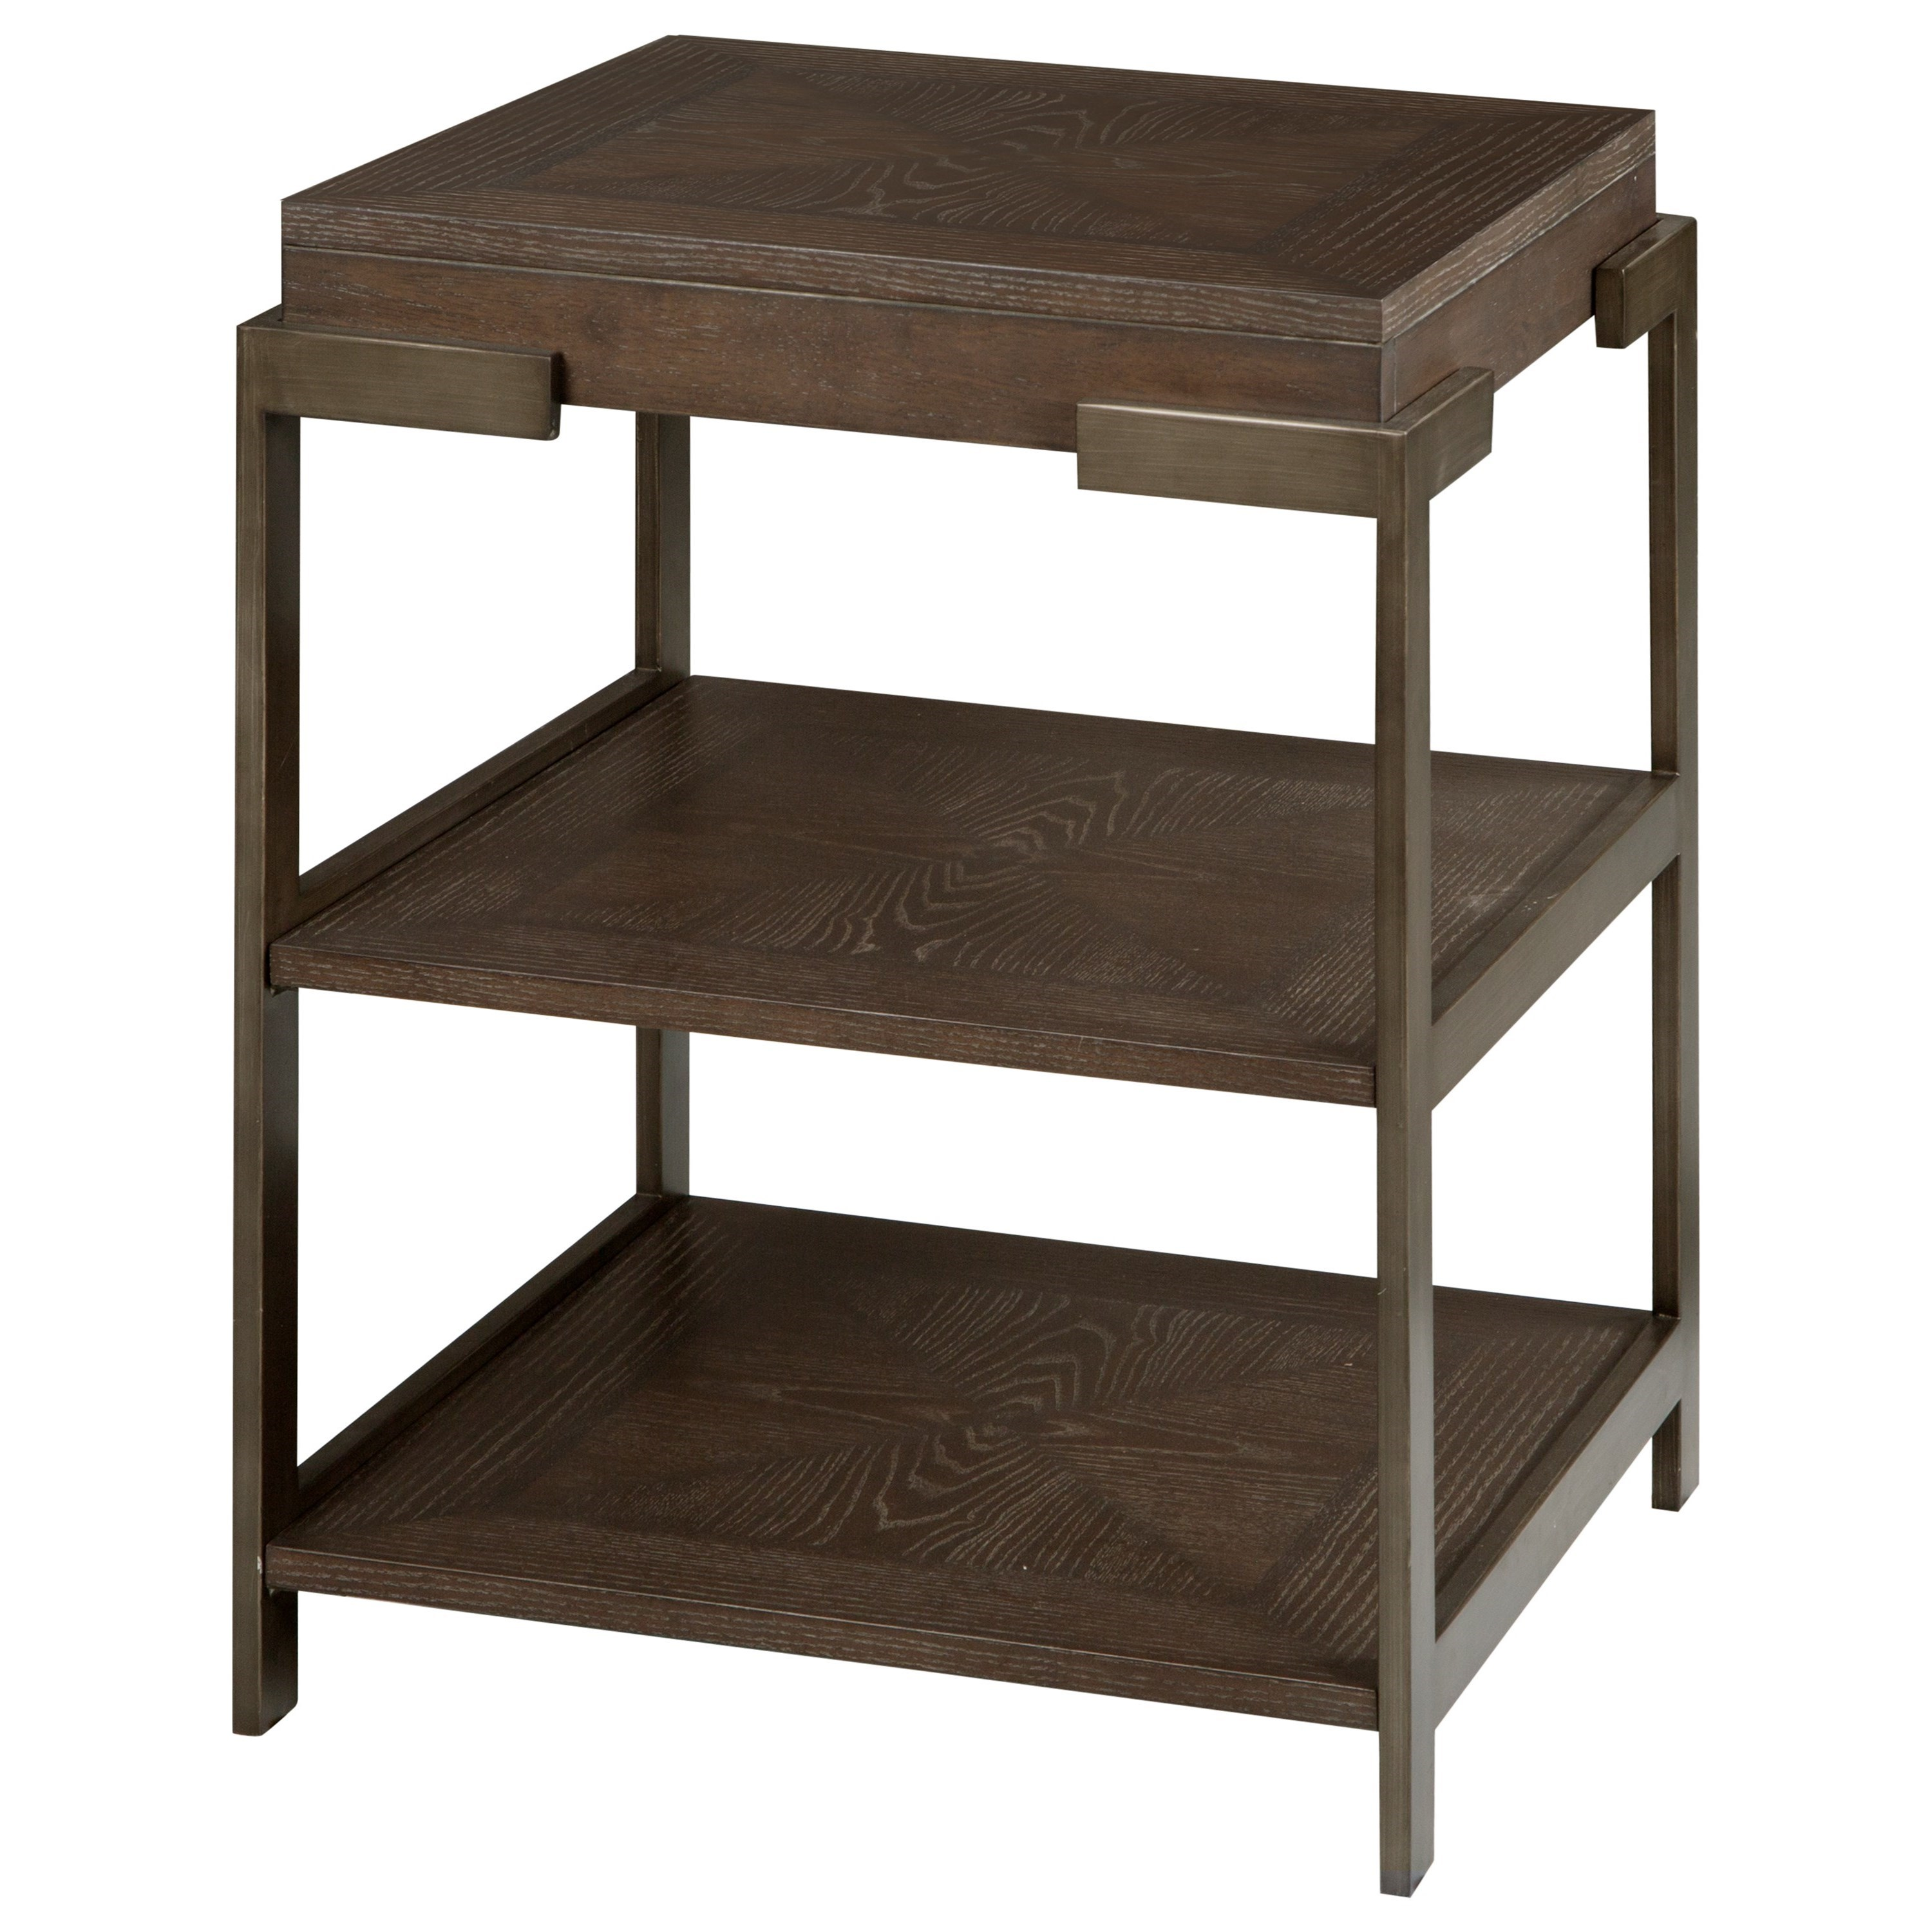 Industrial Square Accent Table with Two Shelves